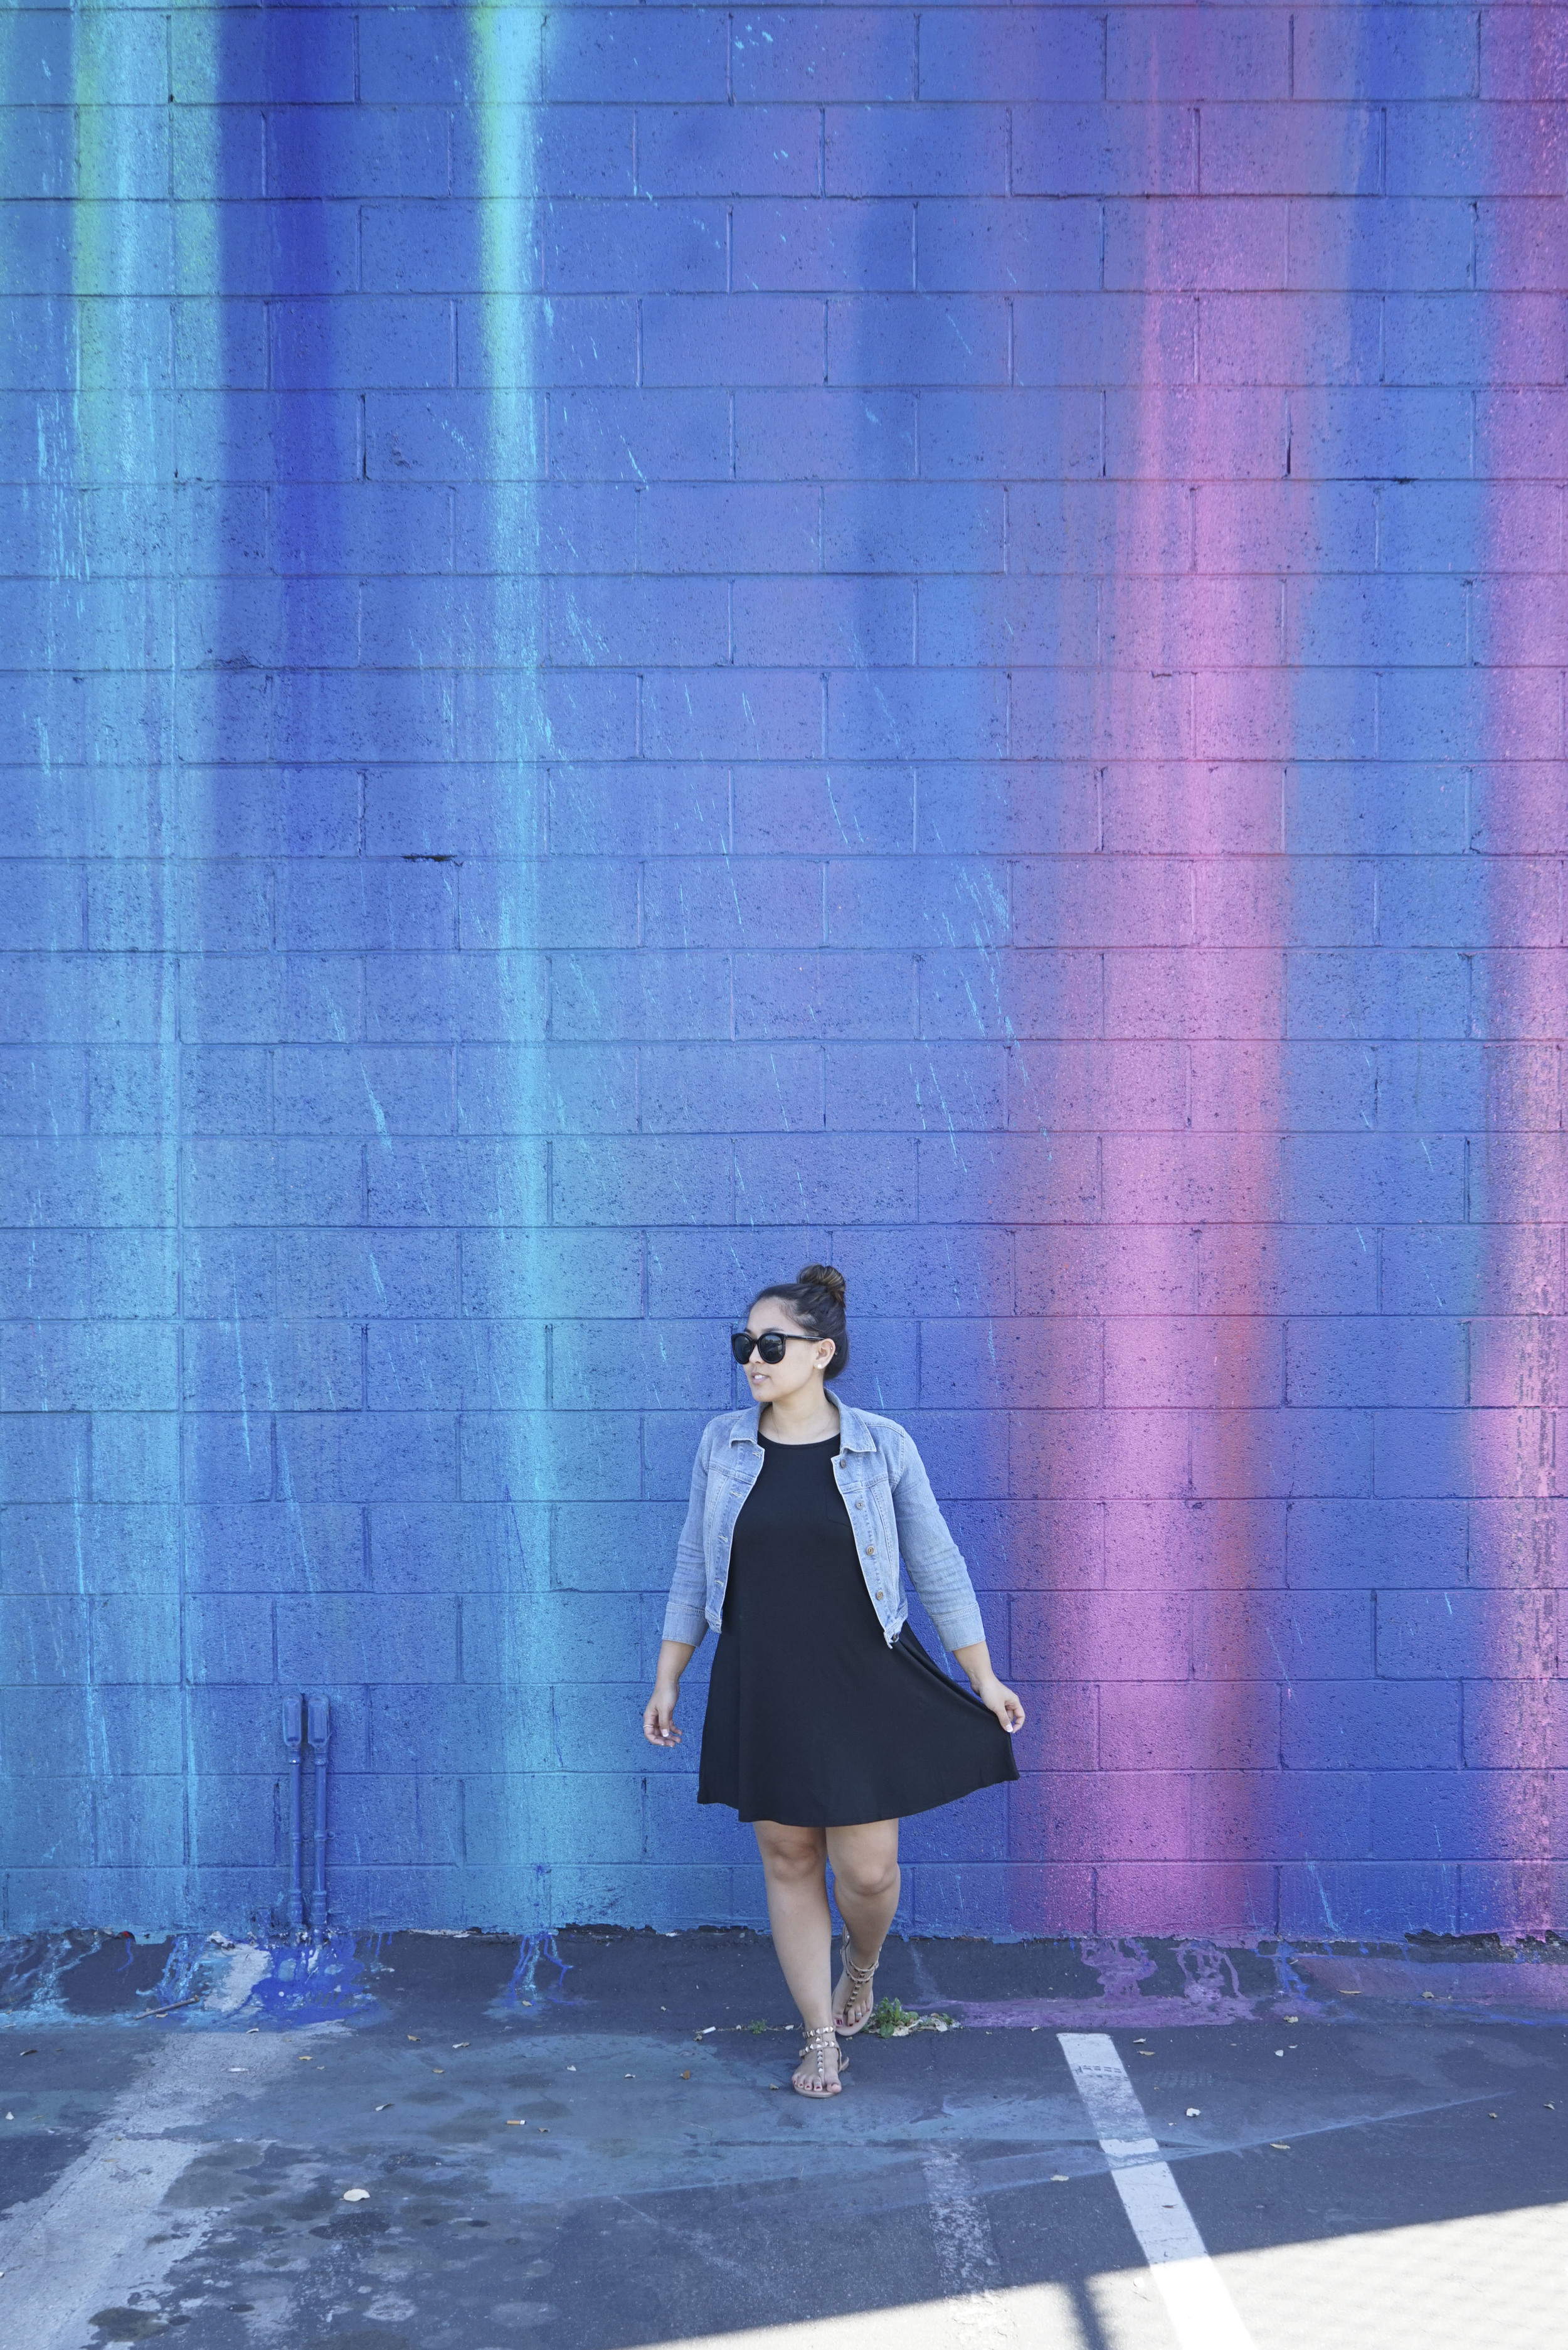 Colorful Walls, Pasadena - Shannon Did What?